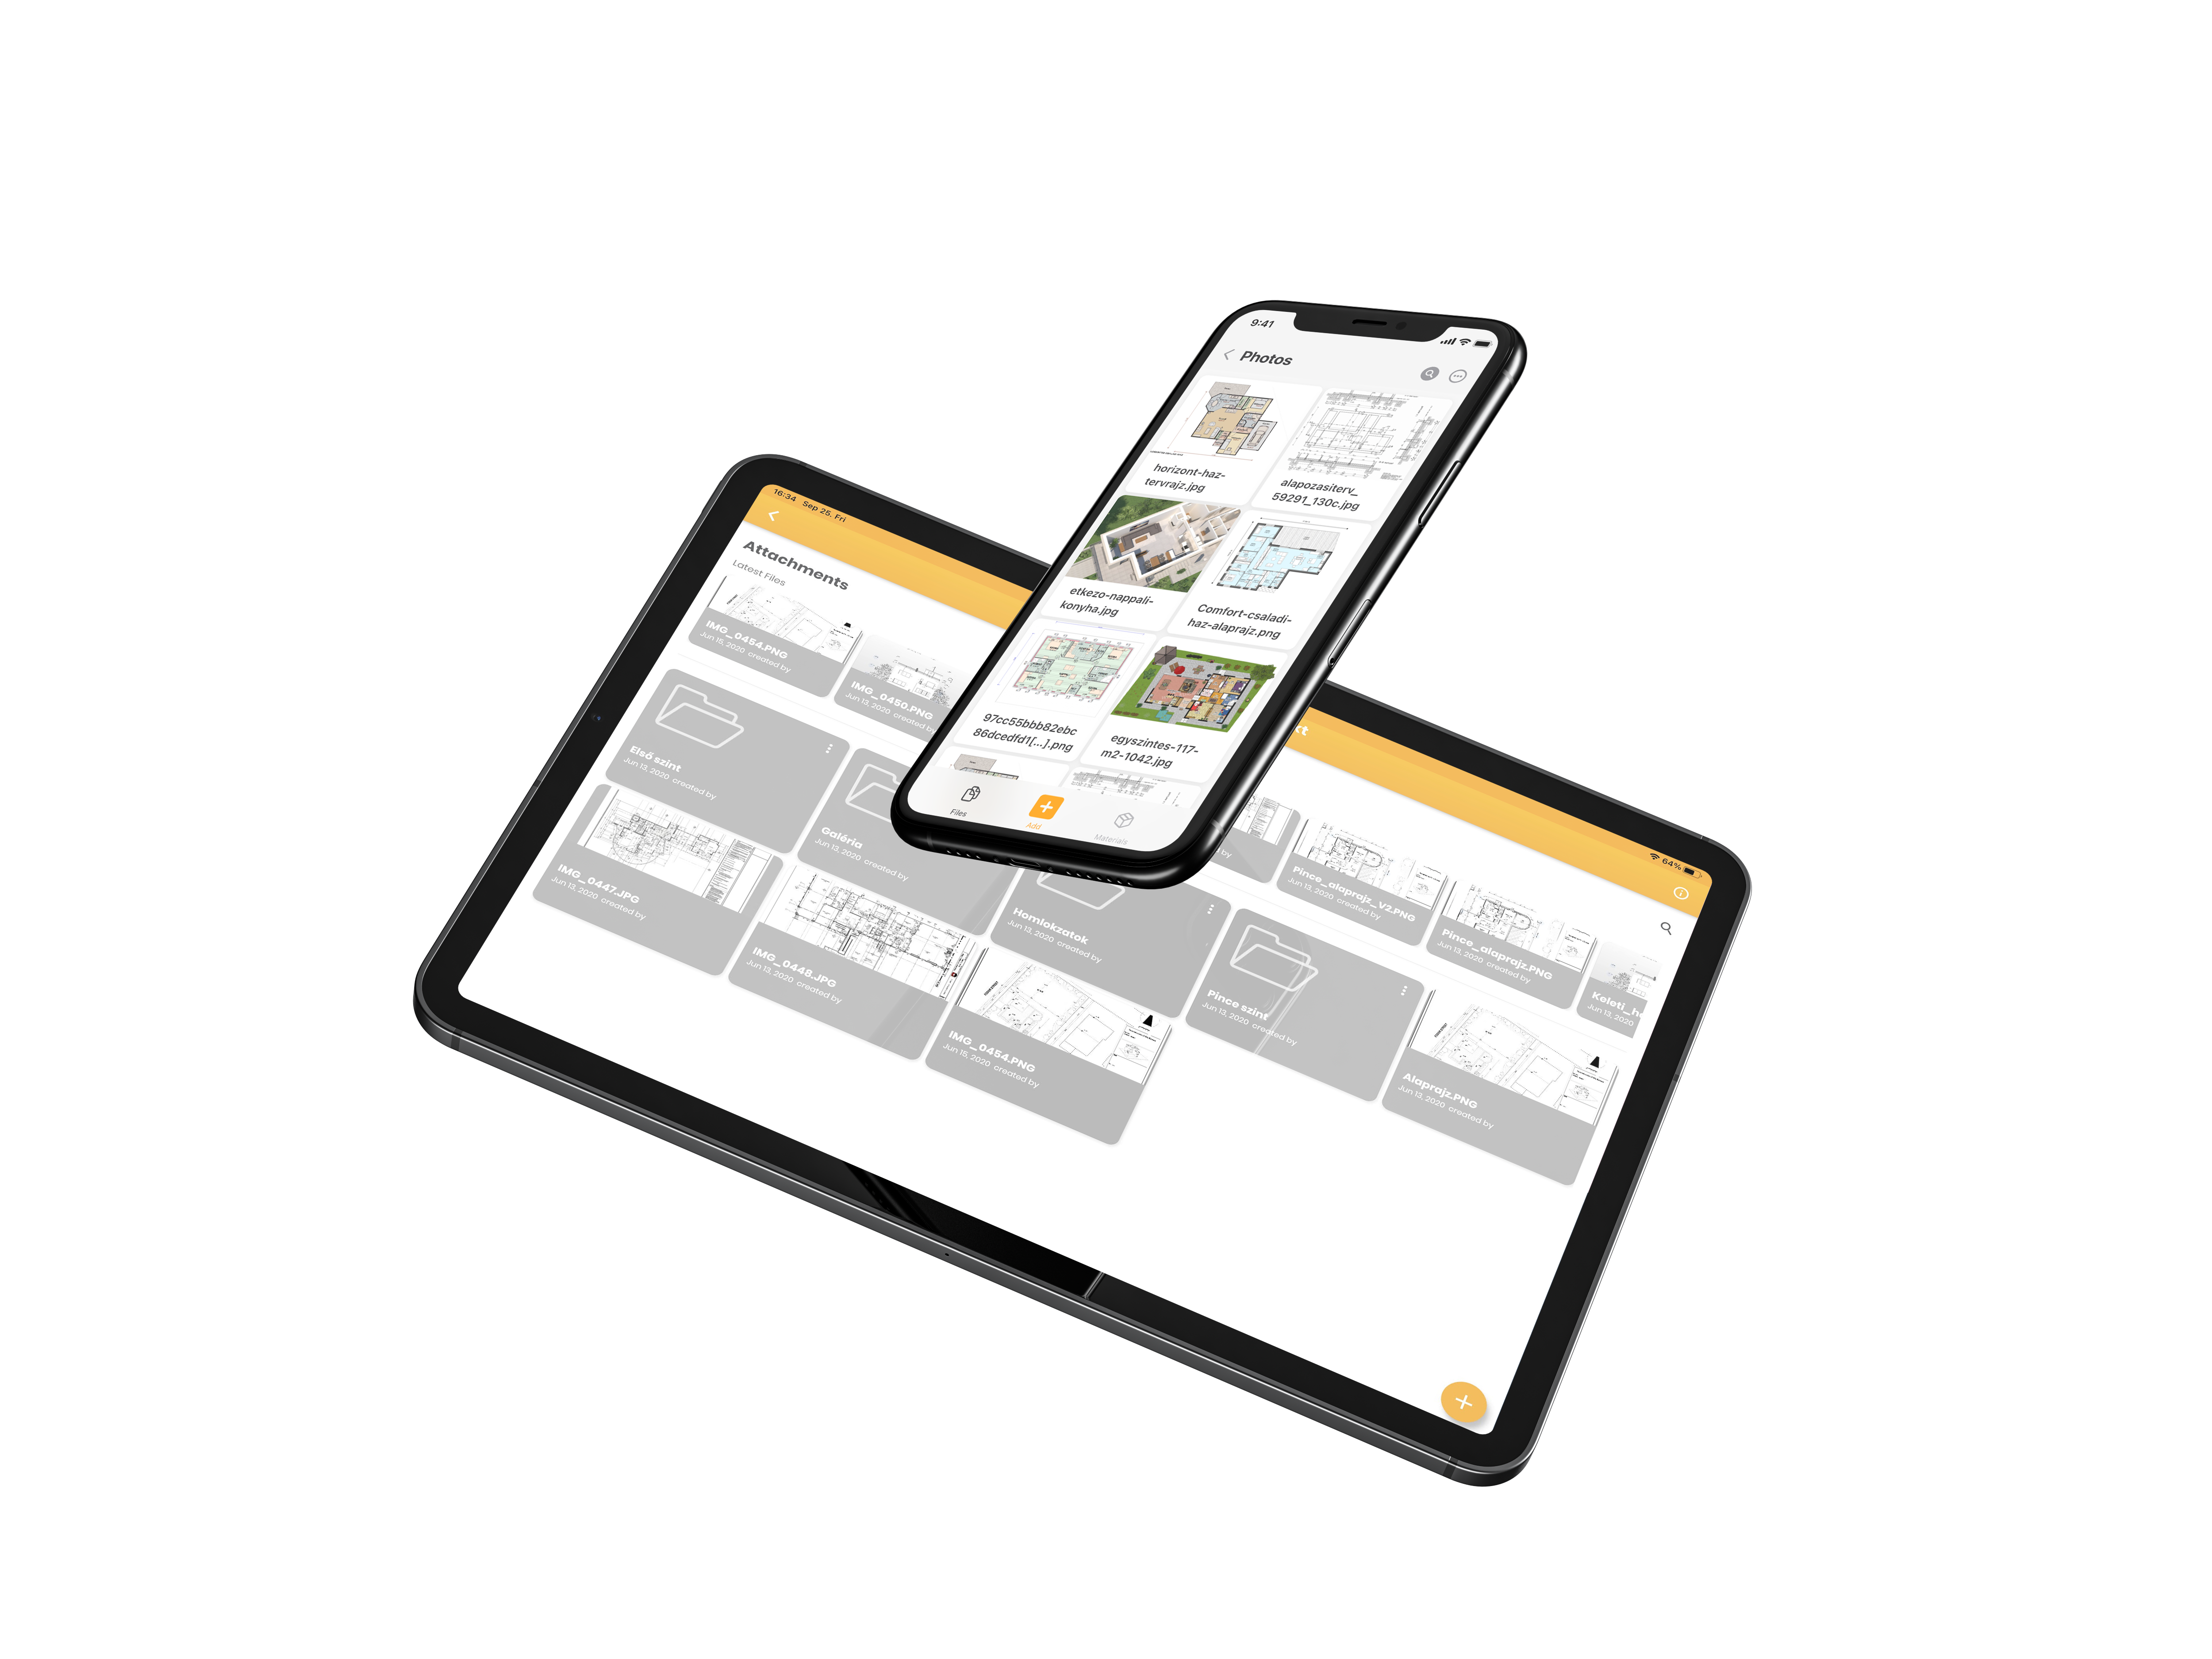 project management software file management on apple devices